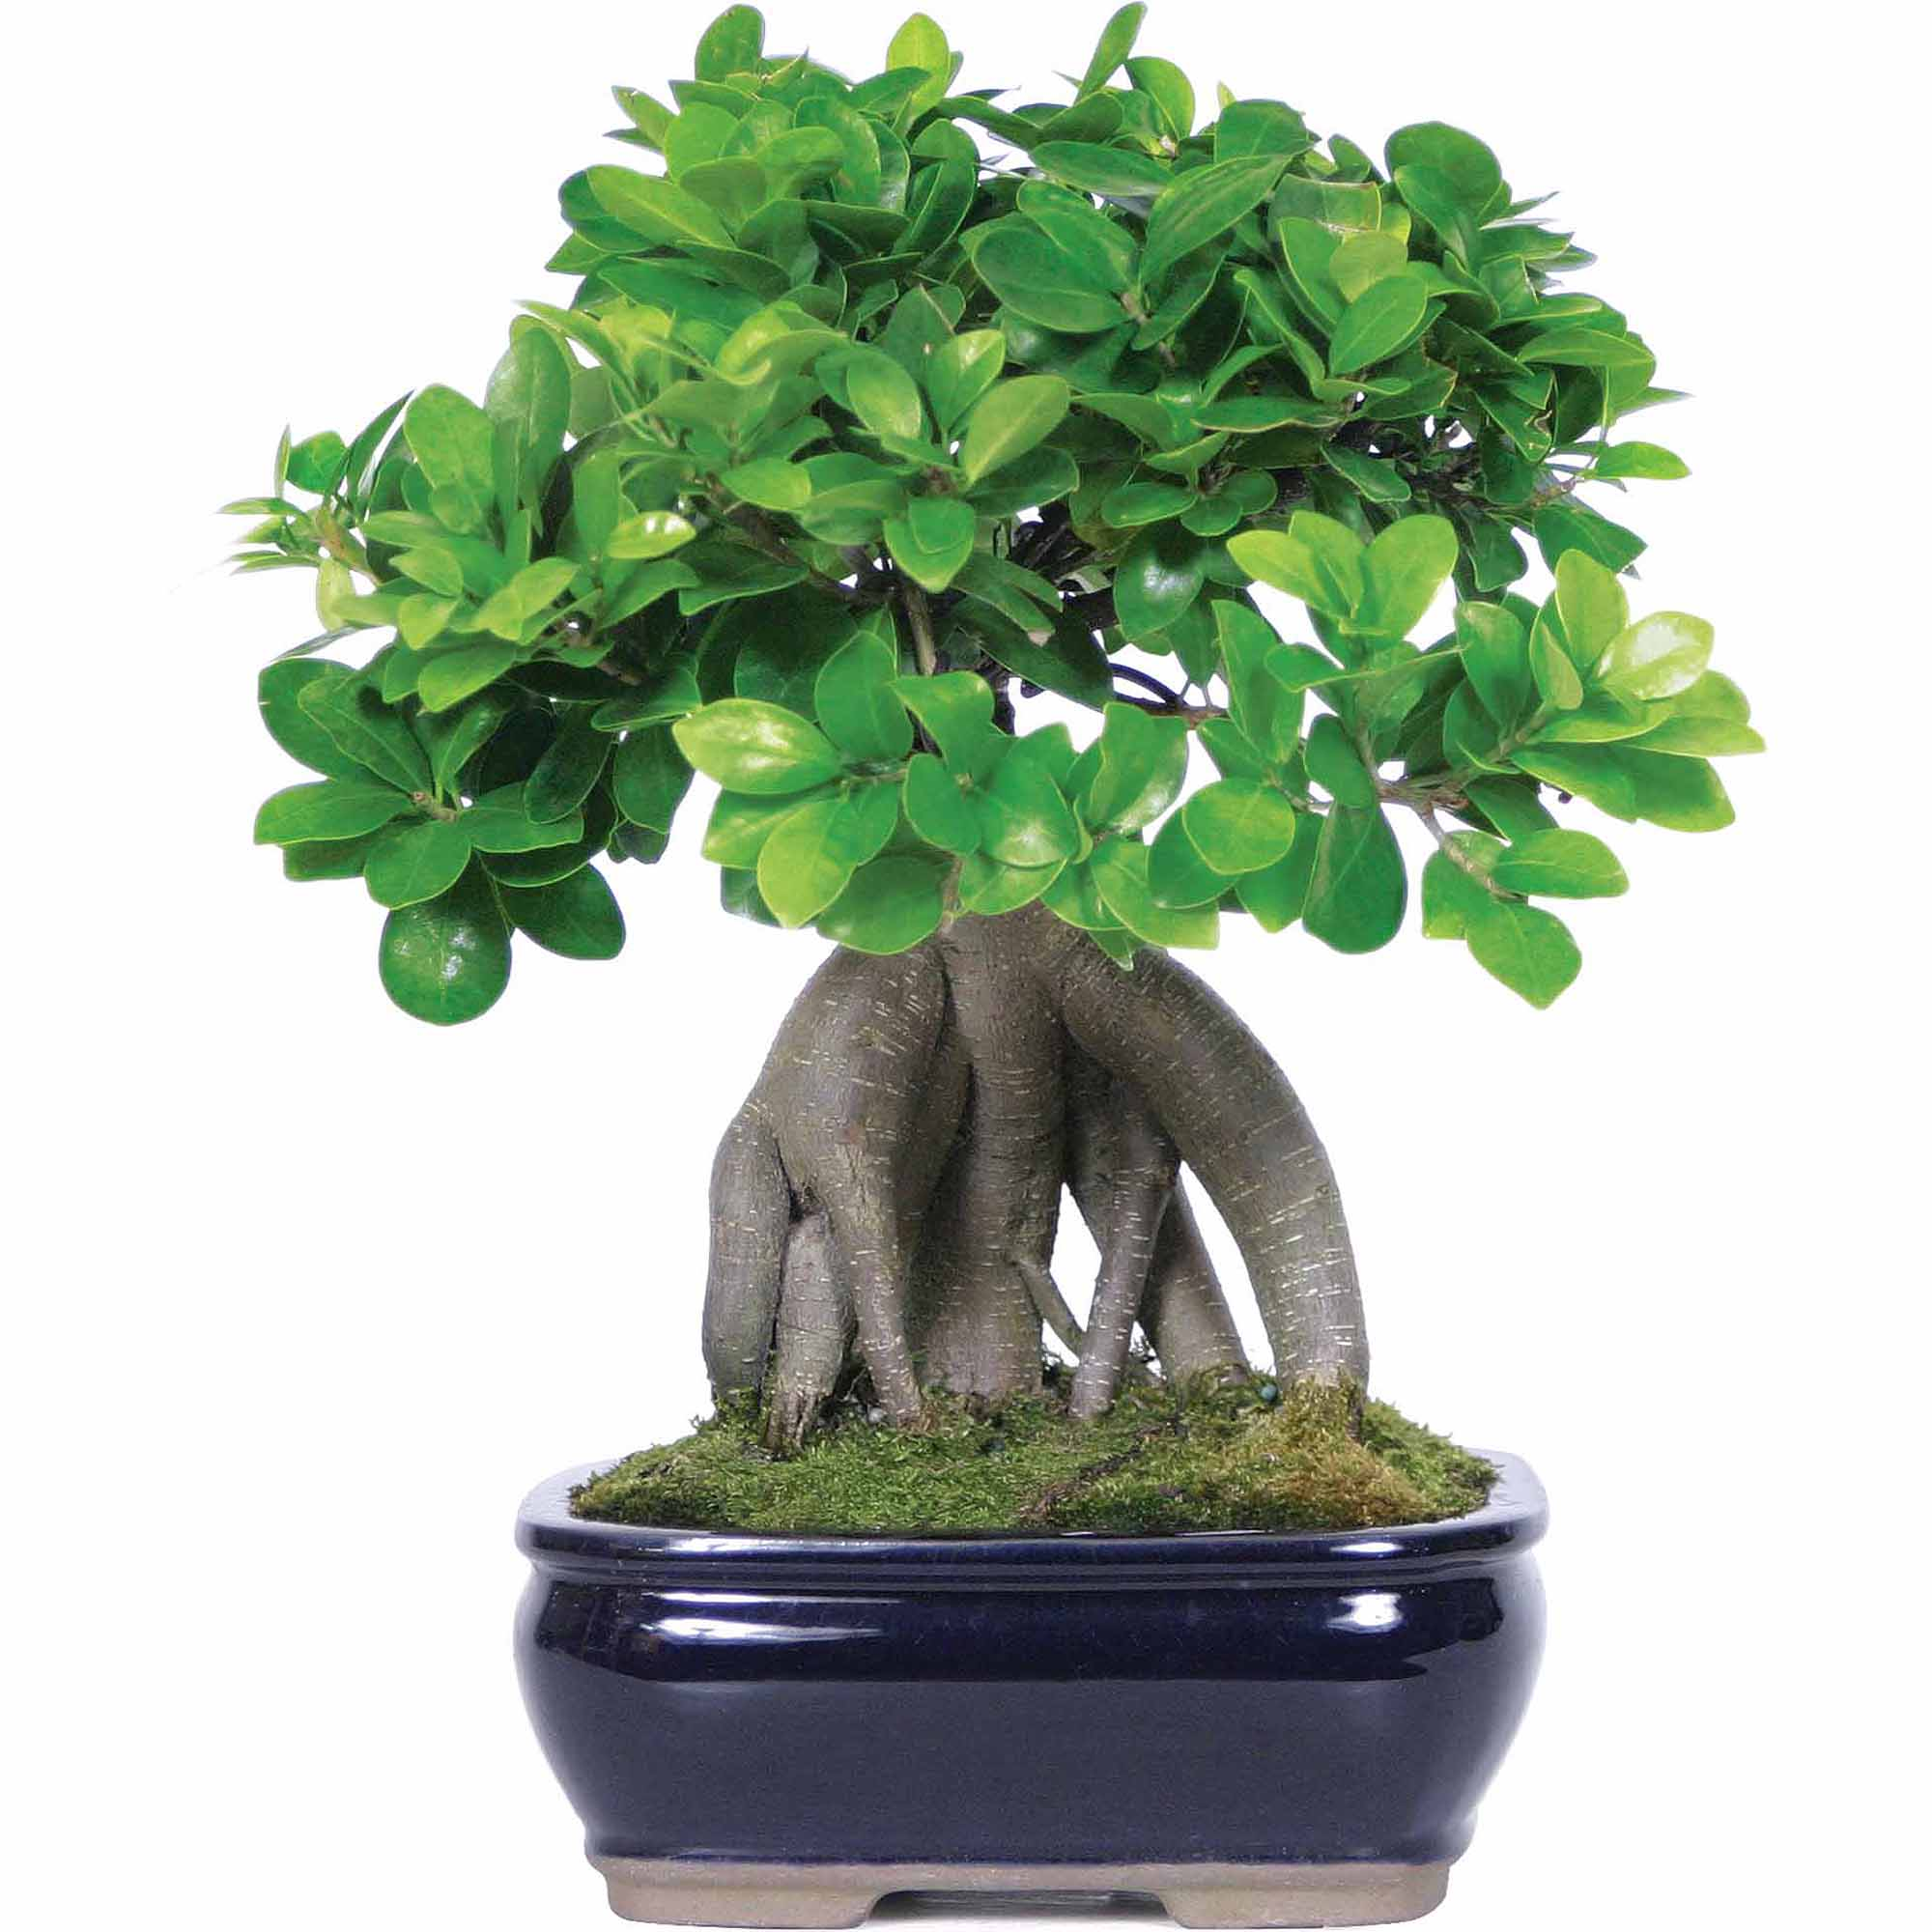 Ginseng Grafted Ficus Bonsai Tree by Brussel's Bonsai